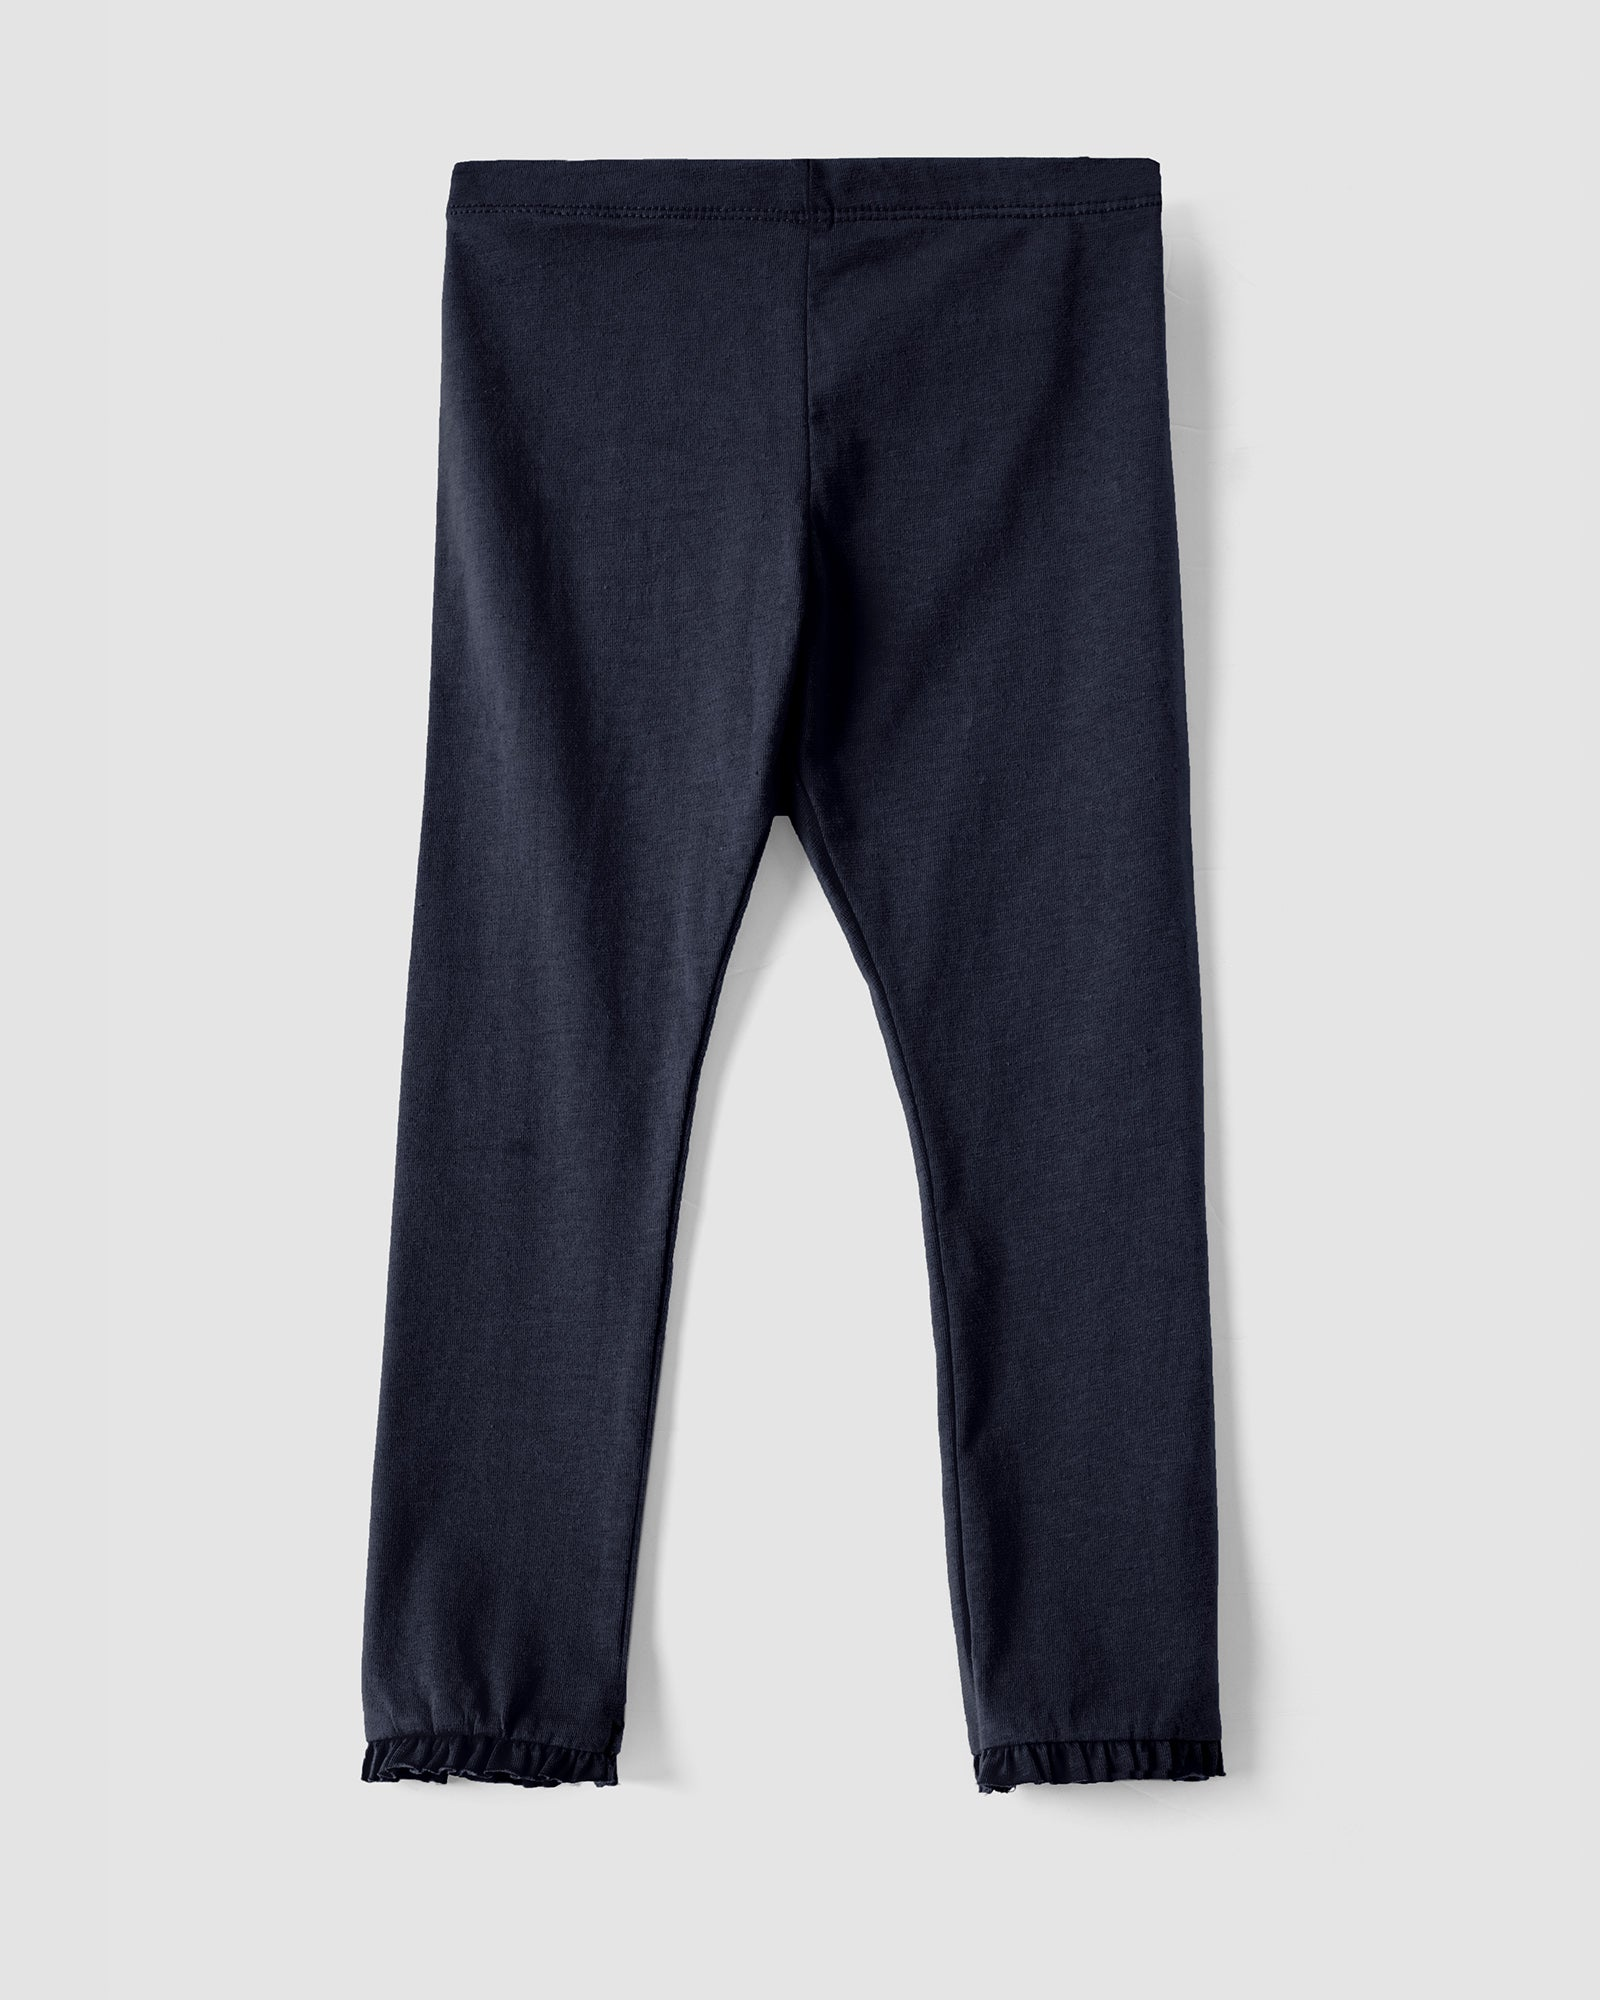 Basic plain trouser